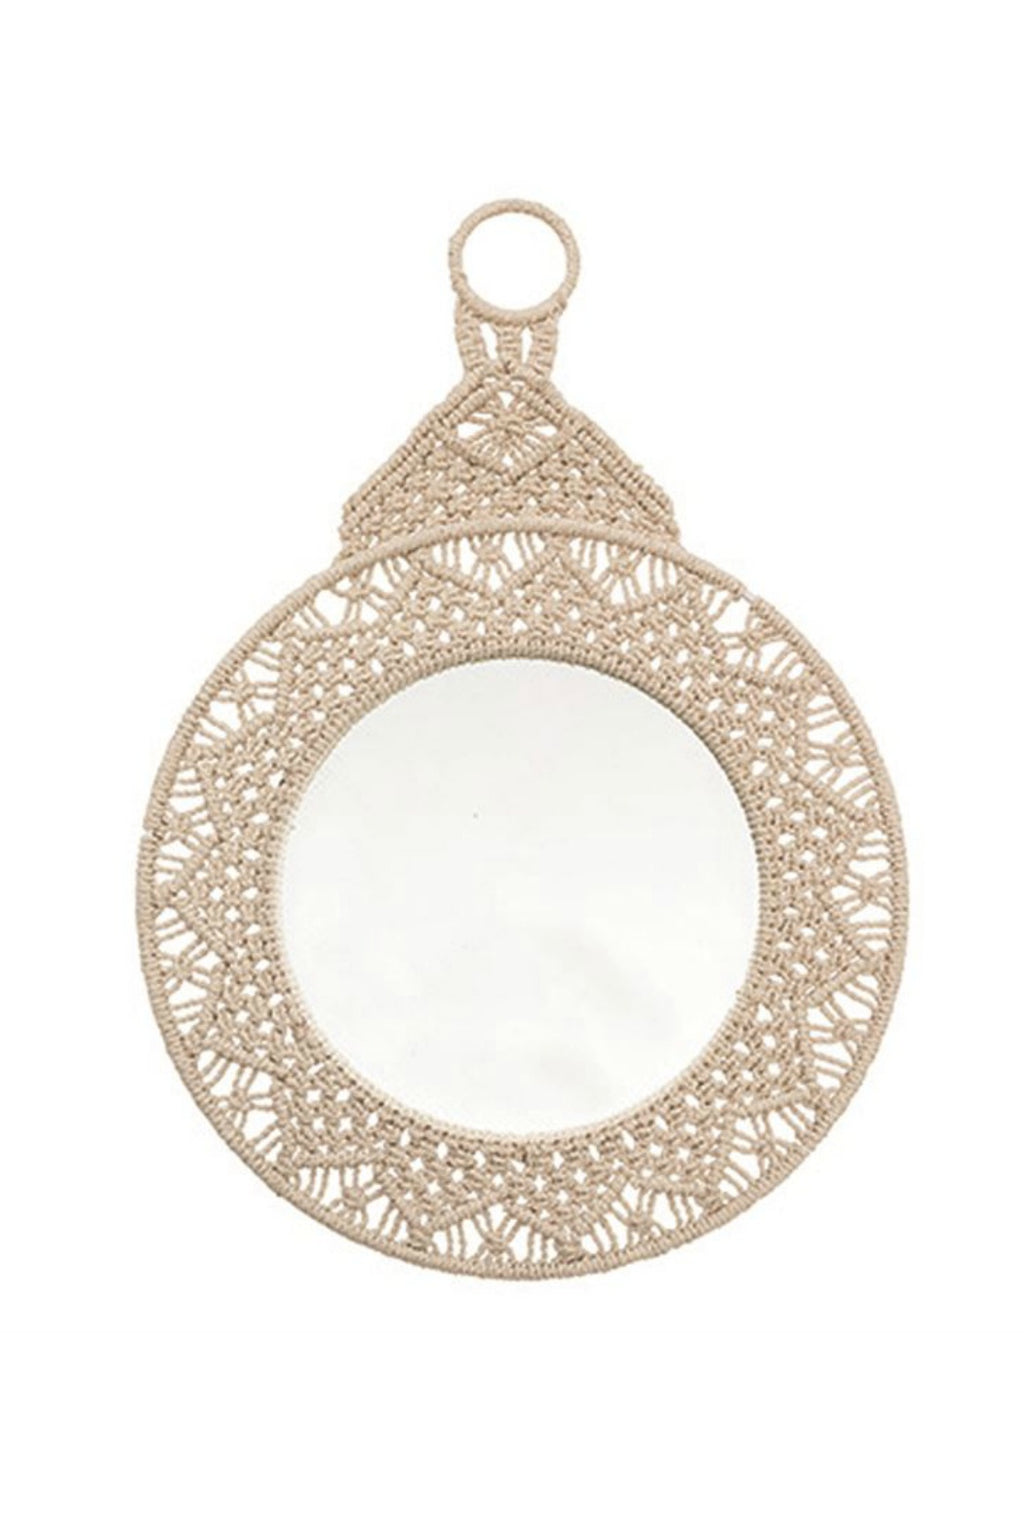 Bloomingville Macramé Framed Wall Mirror